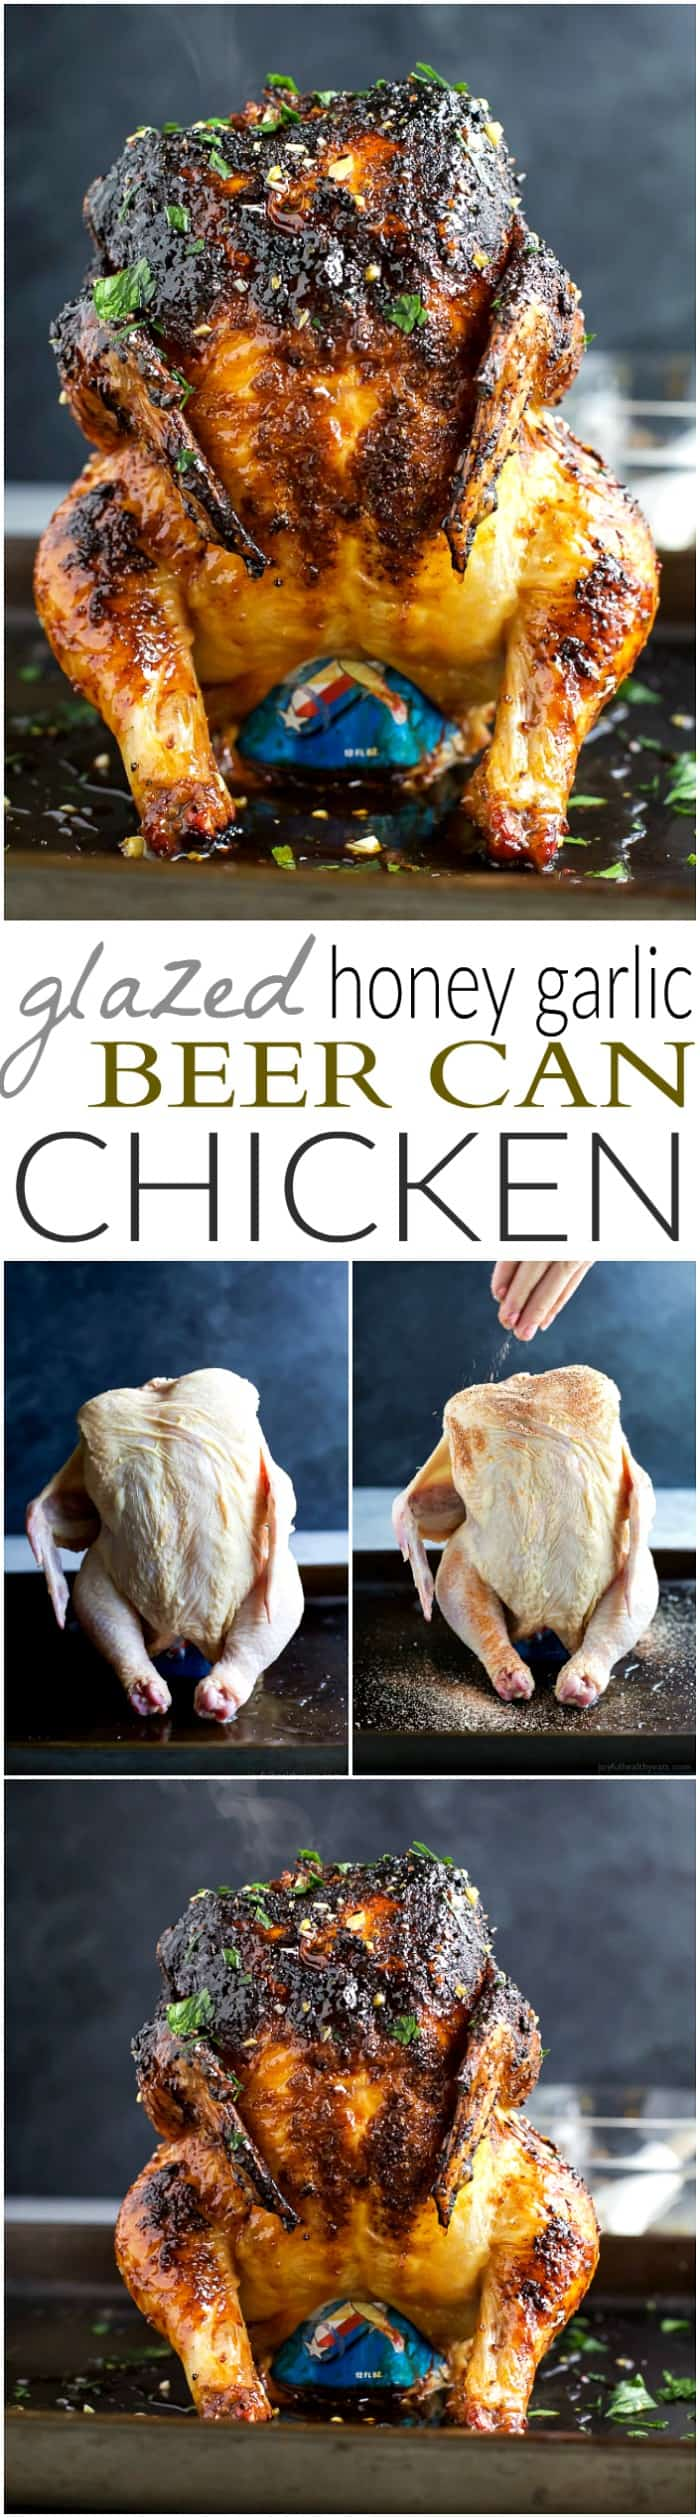 Recipe collage for Glazed Honey Garlic Beer Can Chicken